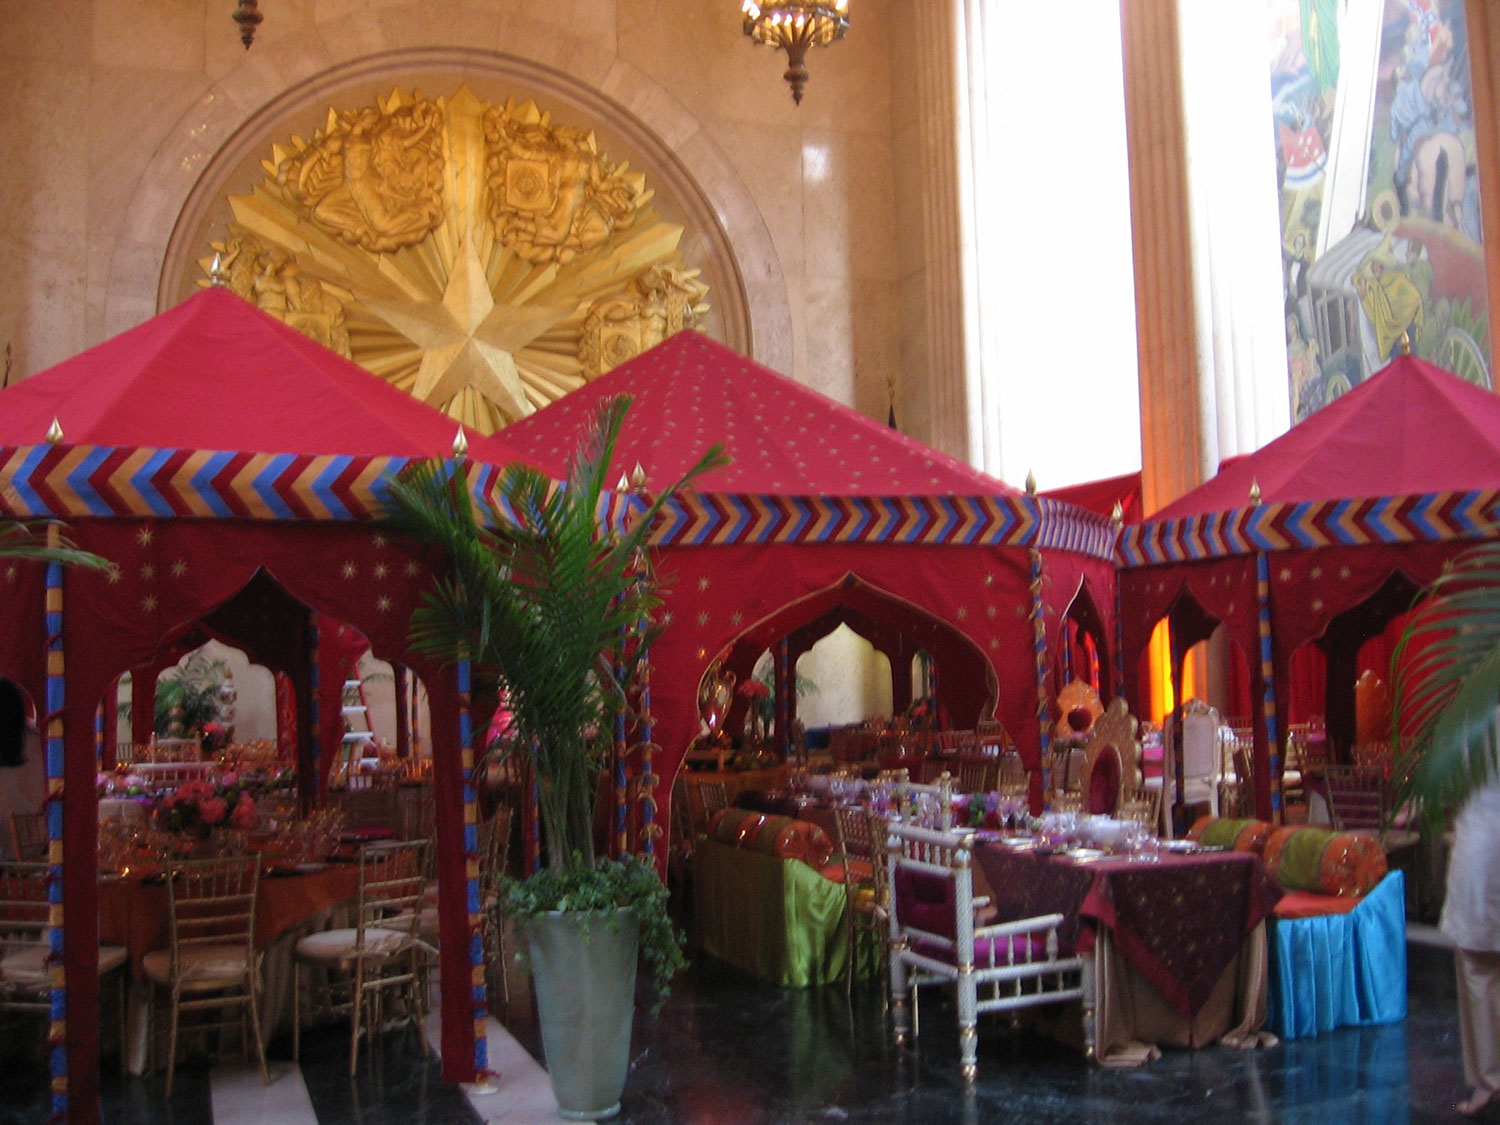 raj-tents-destination-events-moroccan-tents.jpg